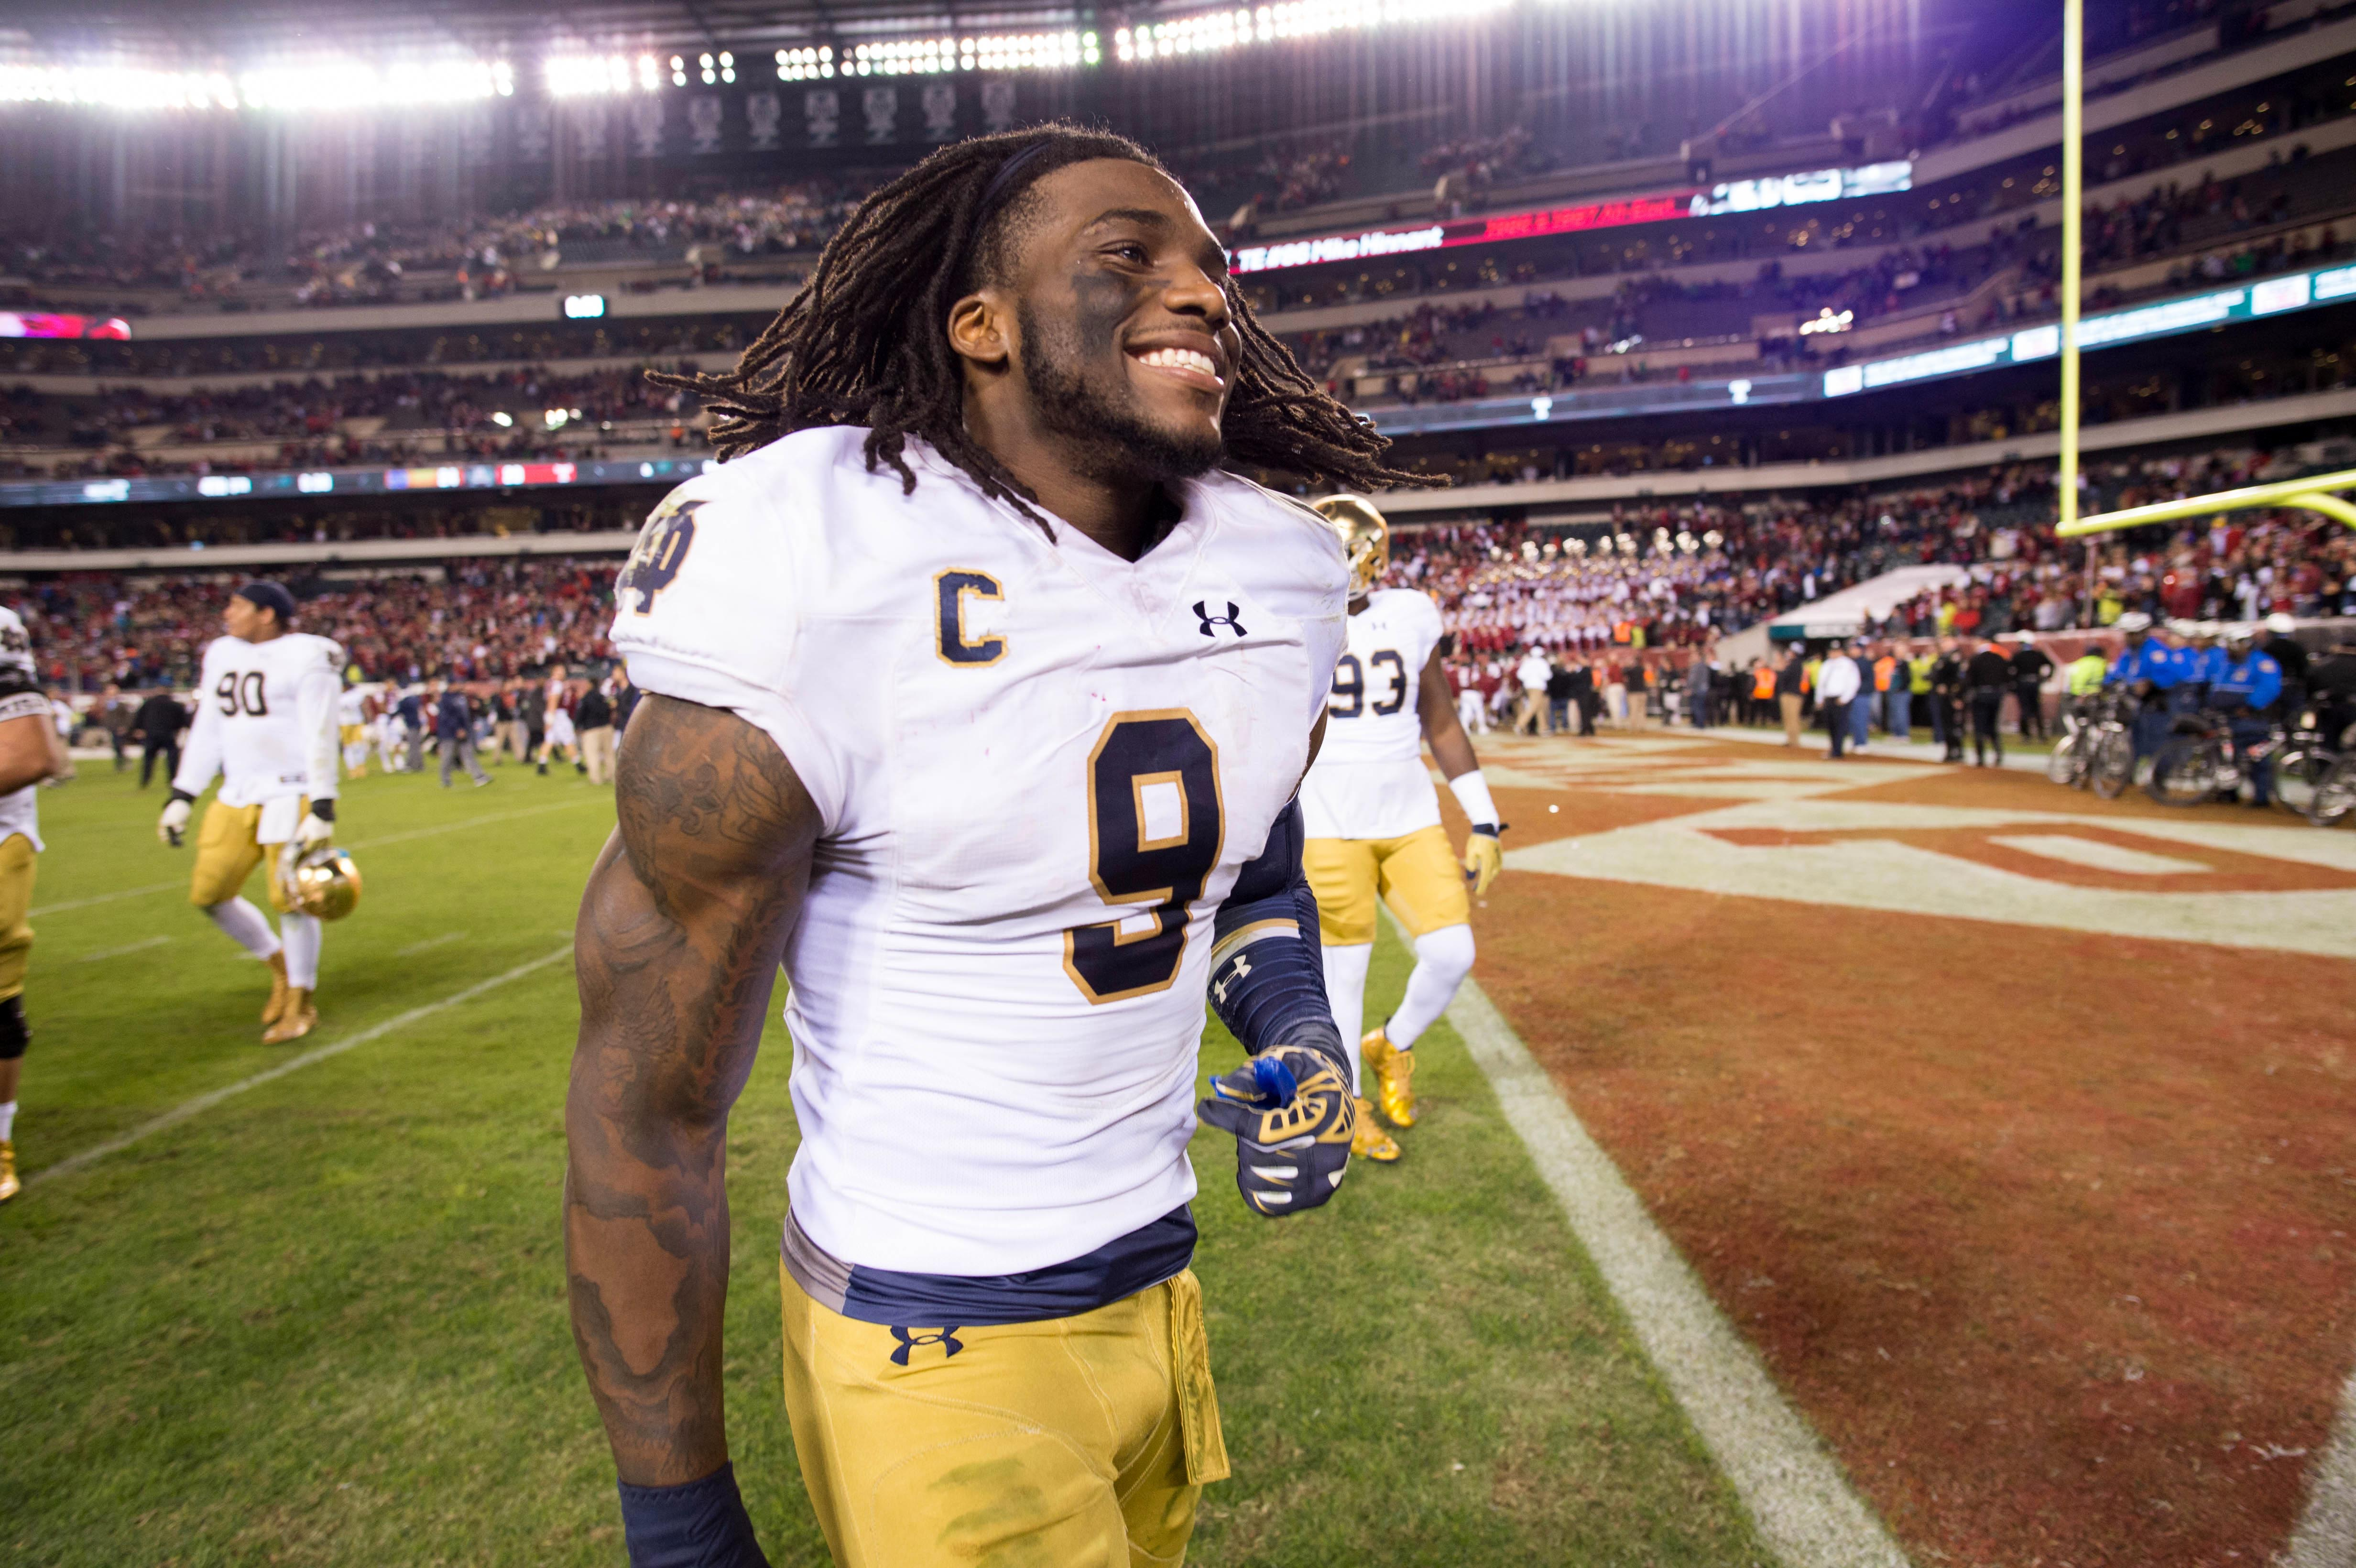 Notre Dame's Jaylon Smith is one of the top prospects to watch today.